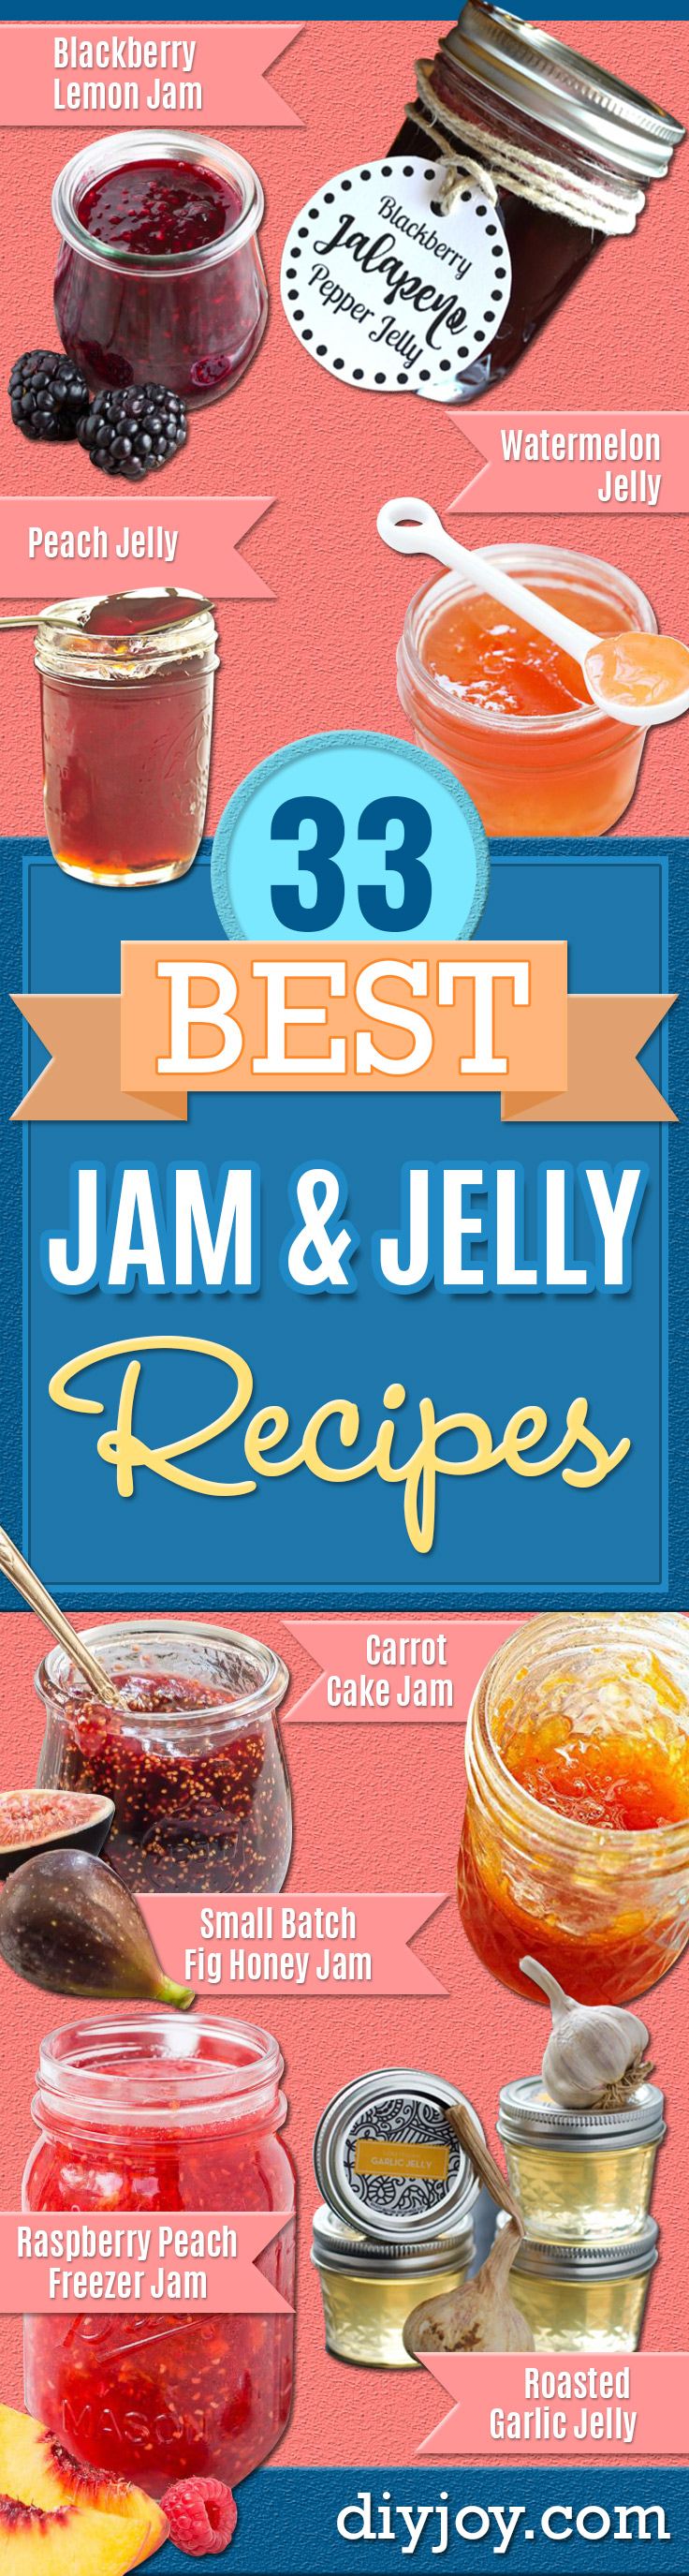 Best Jam and Jelly Recipes - Homemade Recipe Ideas For Canning - Easy and Unique Jams and Jellies Made With Strawberry, Raspberry, Blackberry, Peach and Fruit - Healthy, Sugar Free, No Pectin, Small Batch, Savory and Freezer Recipes #jelly #recipes